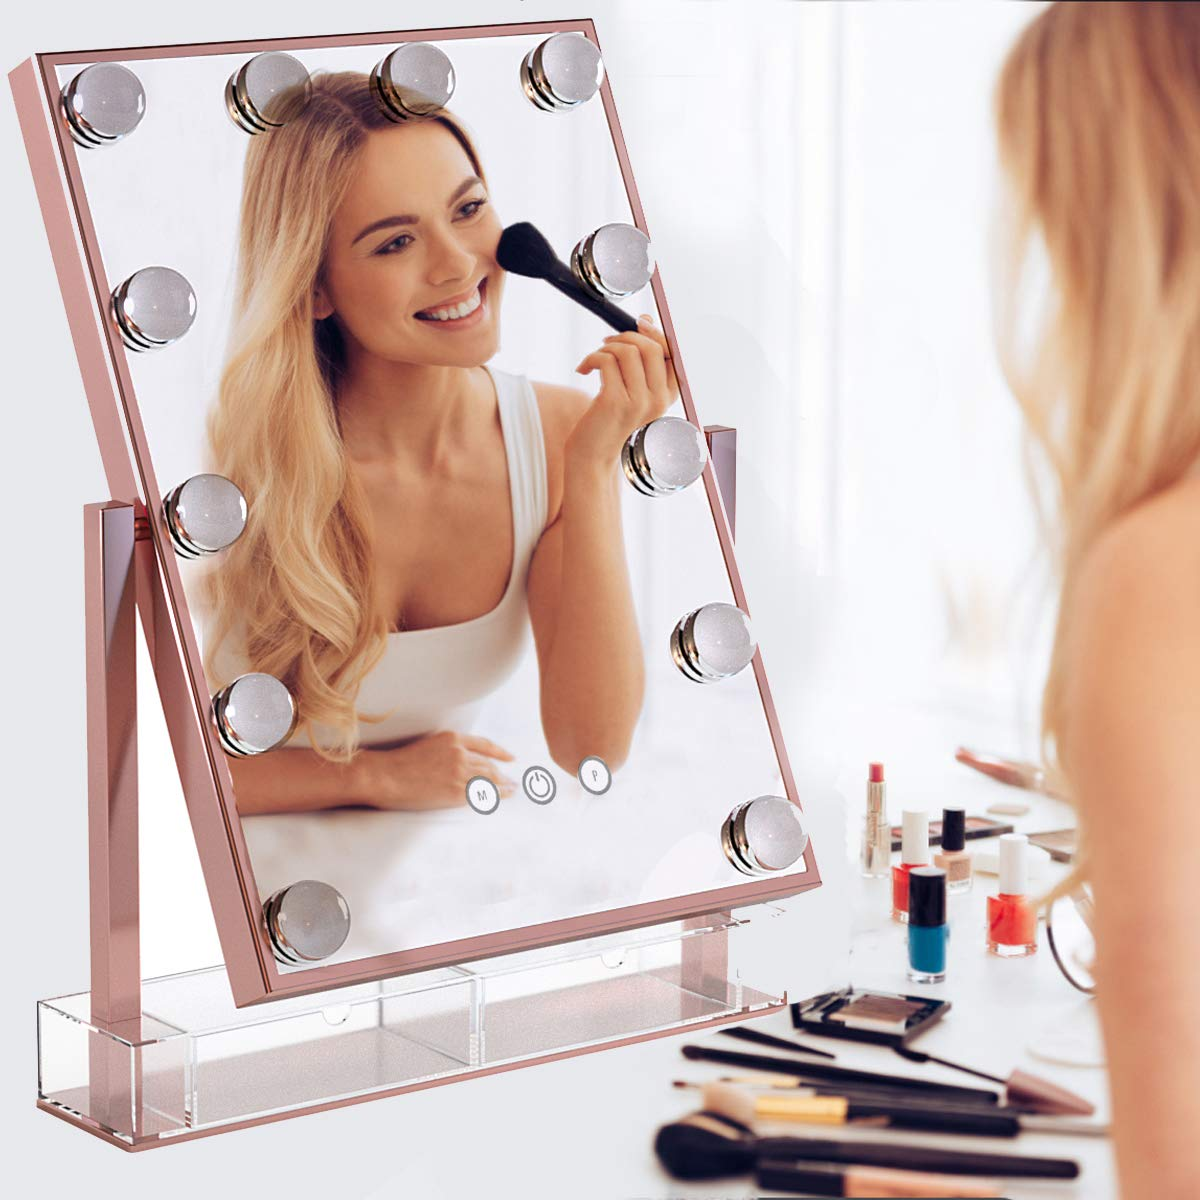 Hansong Hollywood Makeup Vanity Mirror with Lights,Plug in Light-up Professional Mirror,Removable 10x Magnification,3 Color Lighting Modes, Cosmetic Mirror with 12 Dimmable Bulbs for Dressing Desk